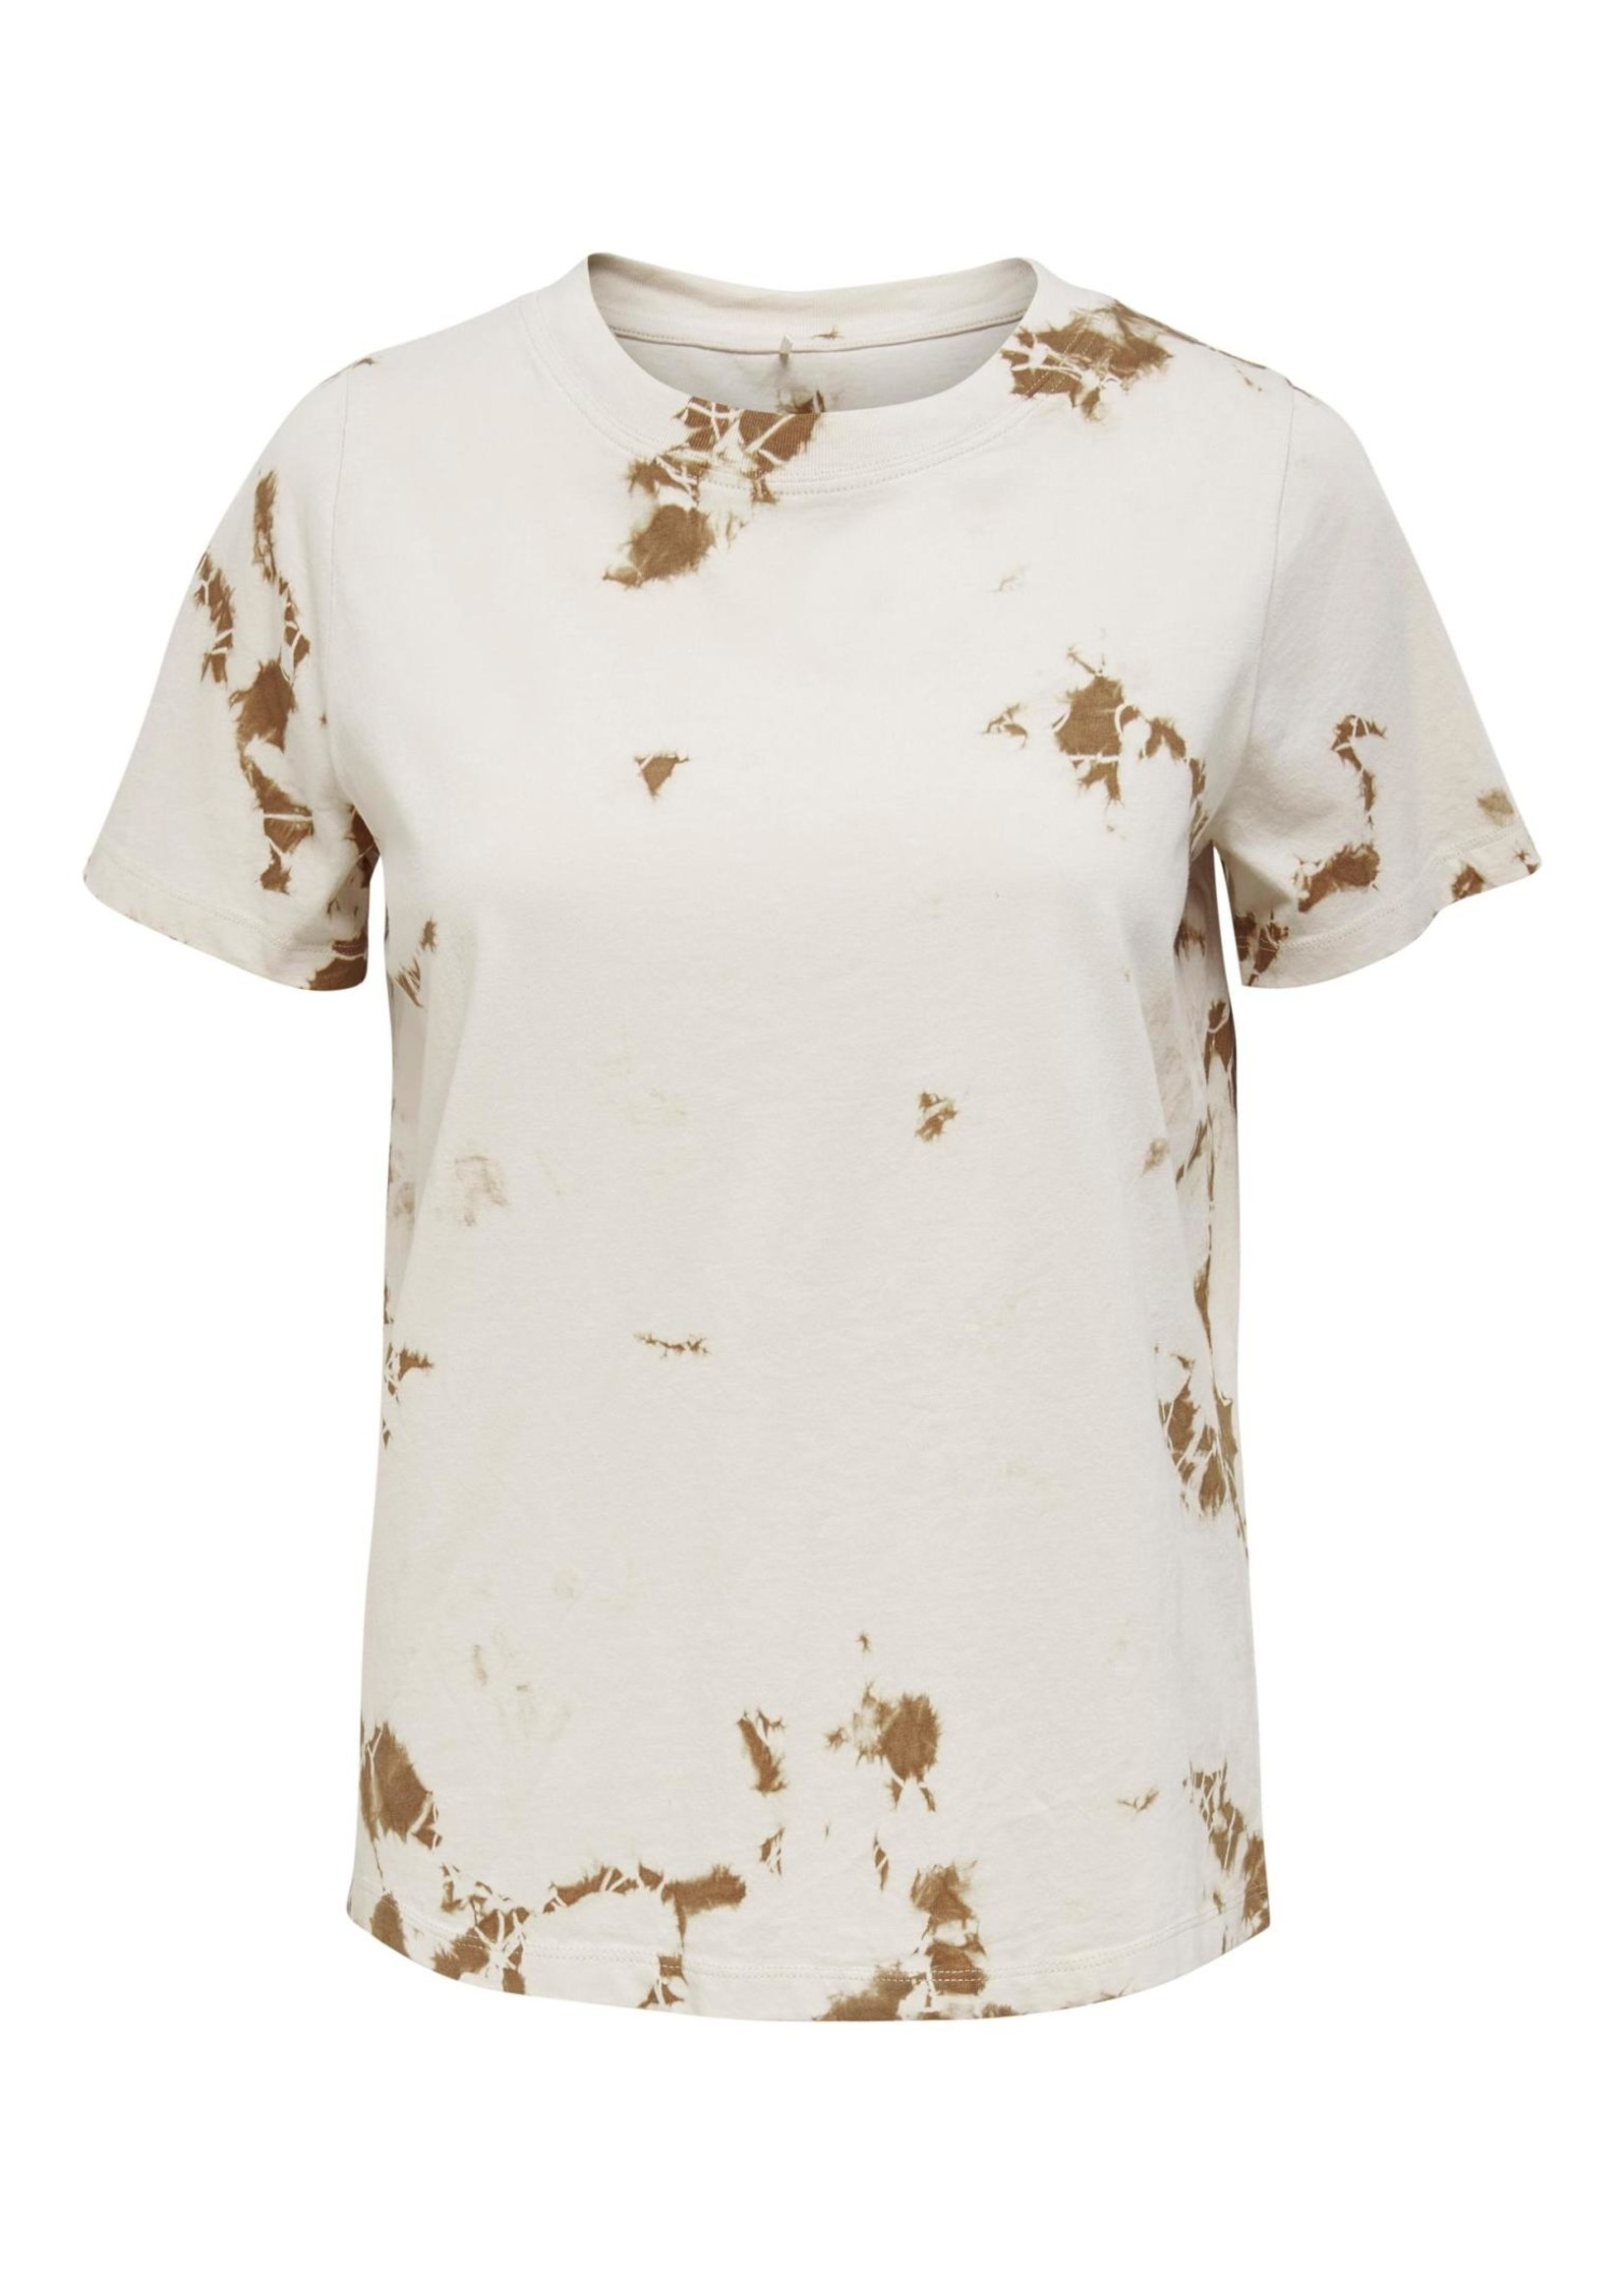 ONLY FINE LIFE S/S TOP JRS, pumice stone